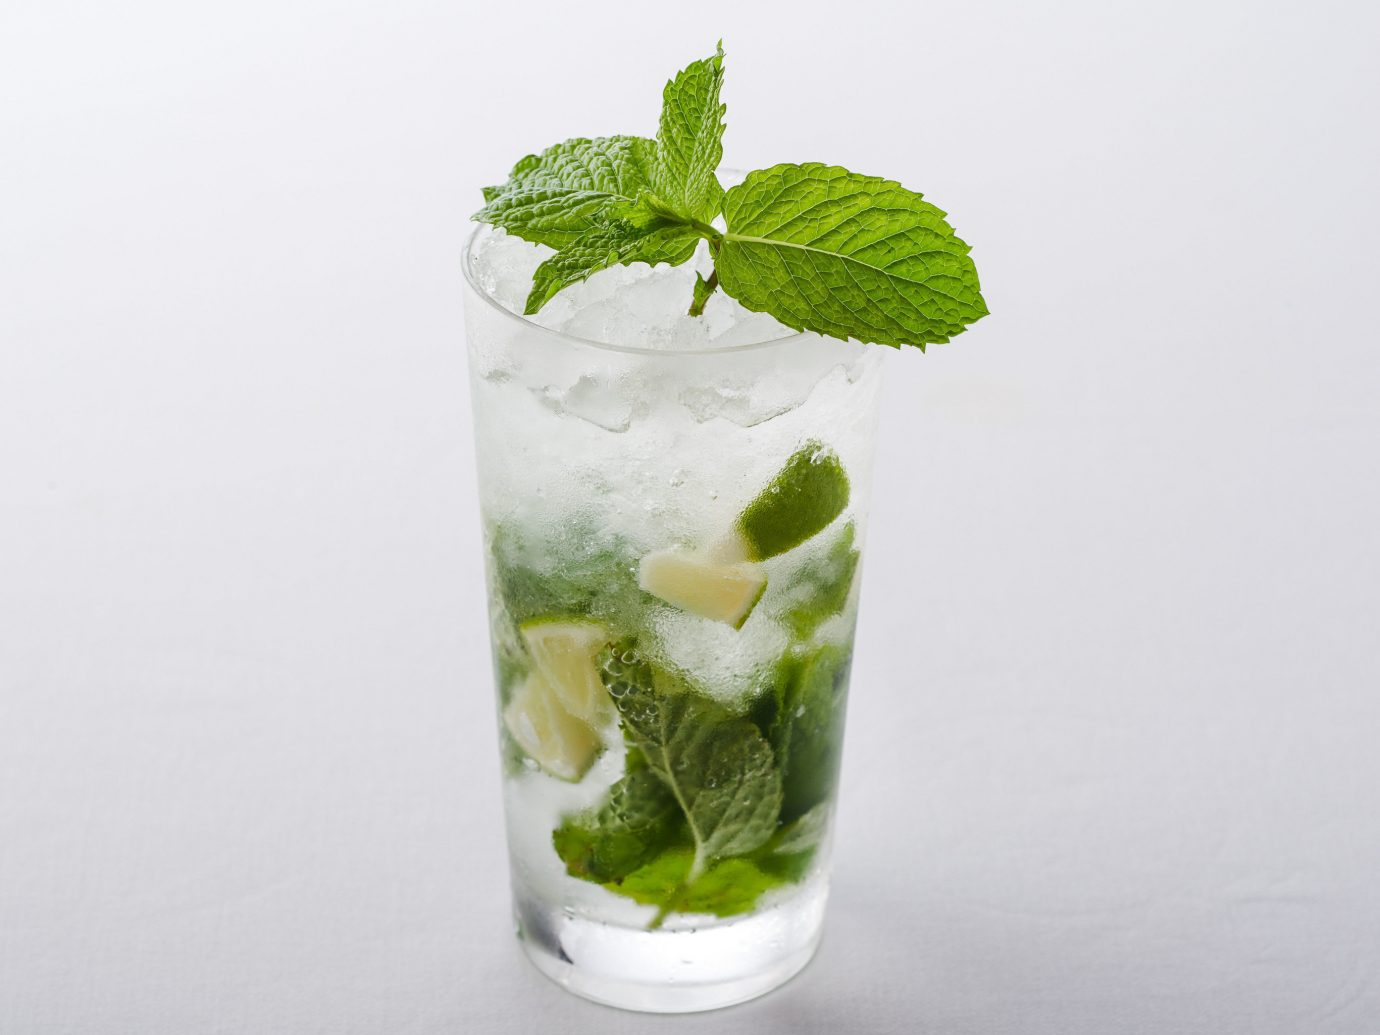 Trip Ideas mojito Drink plant cocktail mint julep the rickey non alcoholic beverage limonana cocktail garnish green rebujito lime juice limeade vodka and tonic lime health shake gin and tonic spritzer garnish dessert